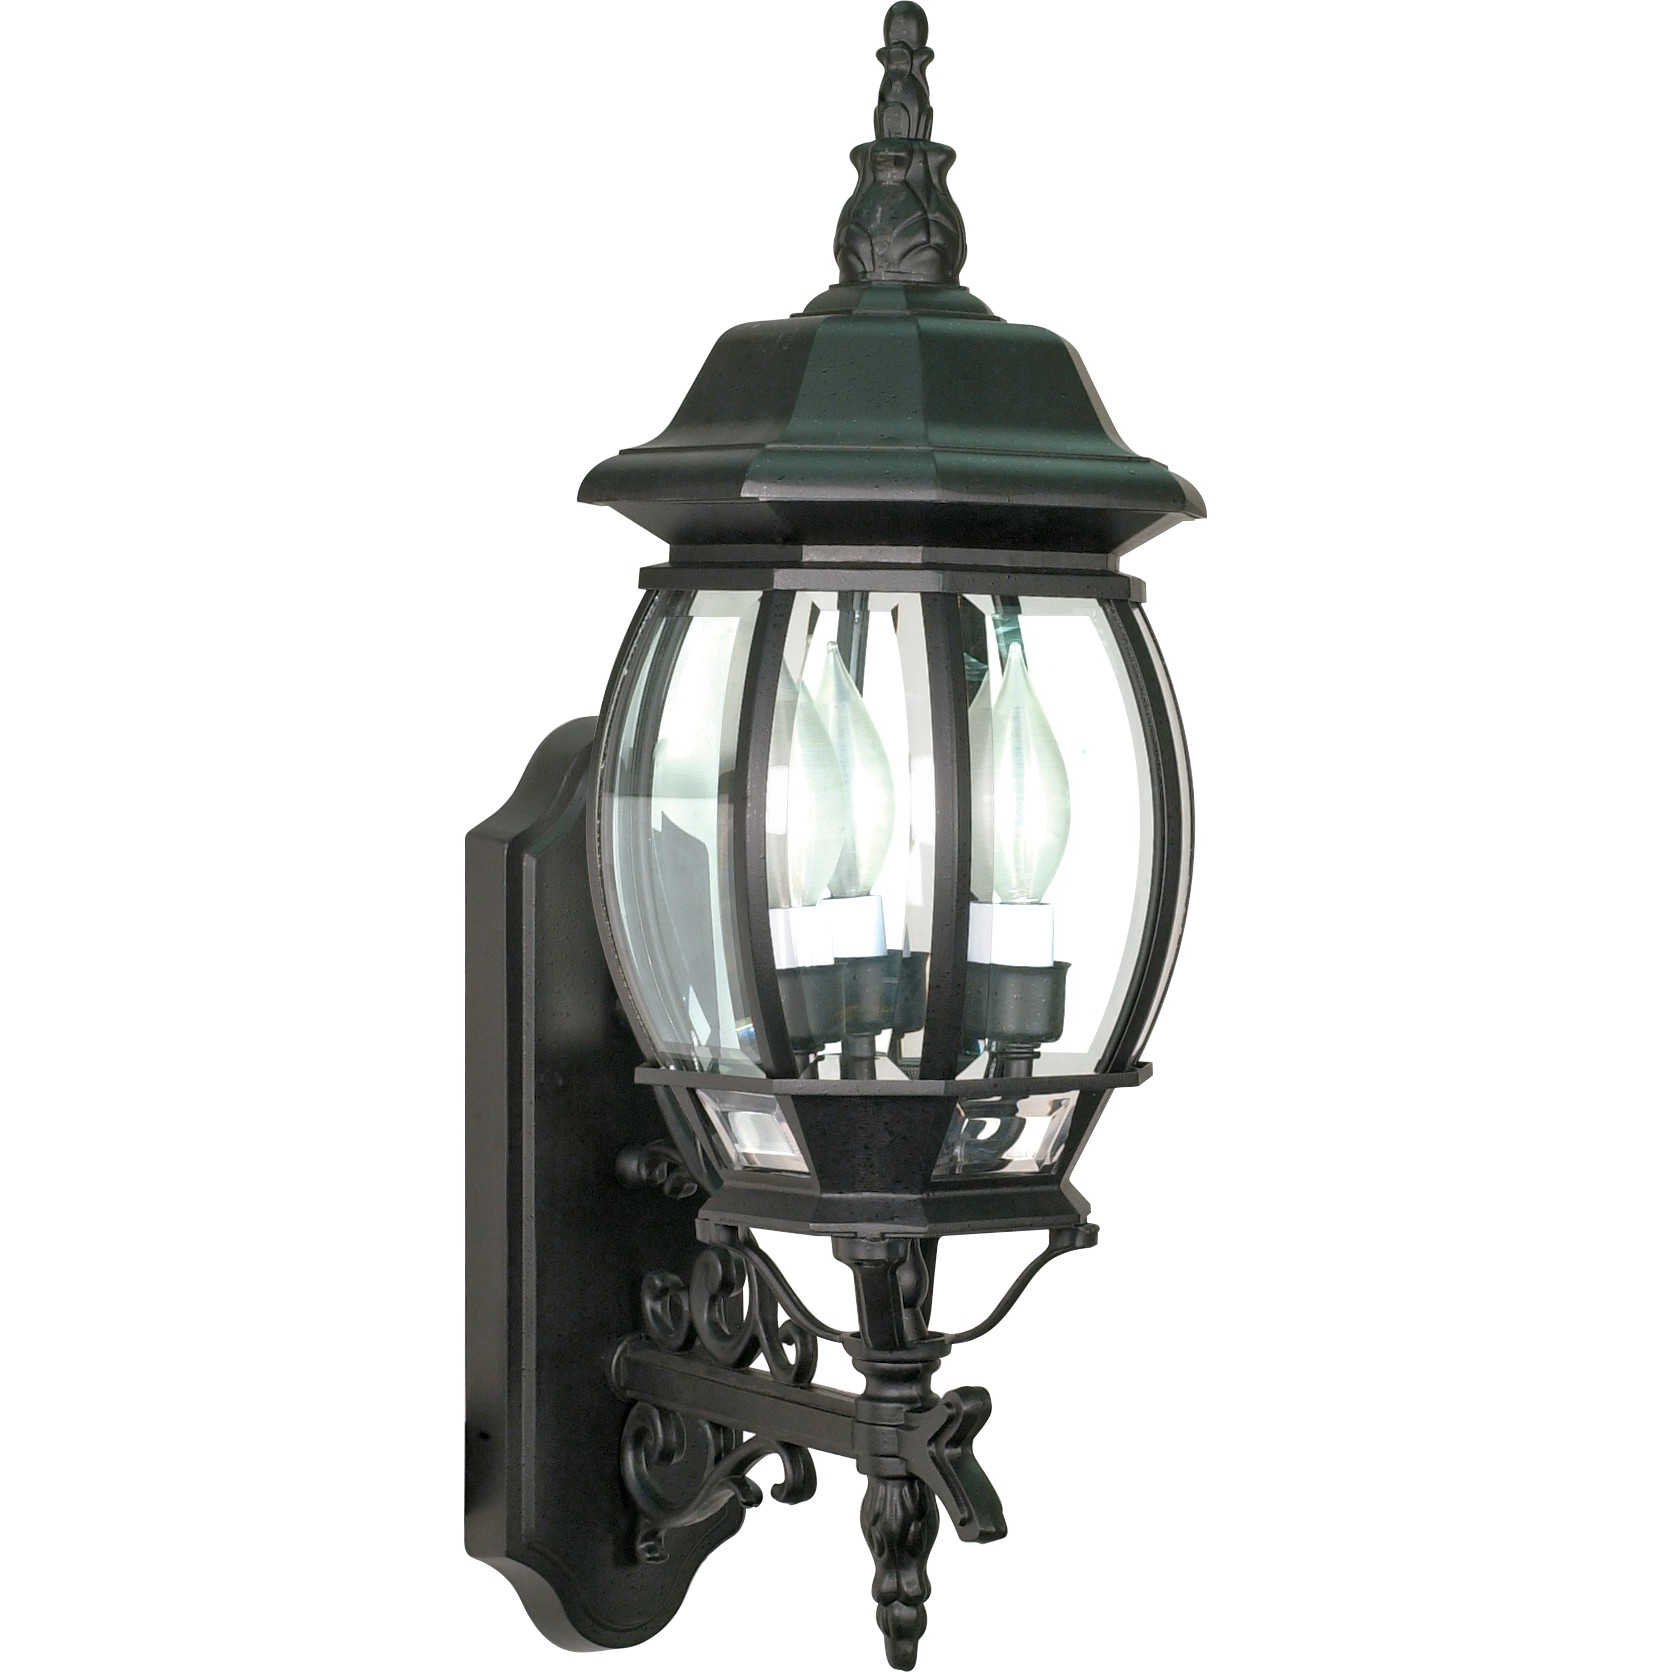 Entertainment : Nuvo Light Large Outdoor Wall Lantern Central Park Within Well Known Outdoor Wall Lighting At Houzz (View 6 of 20)